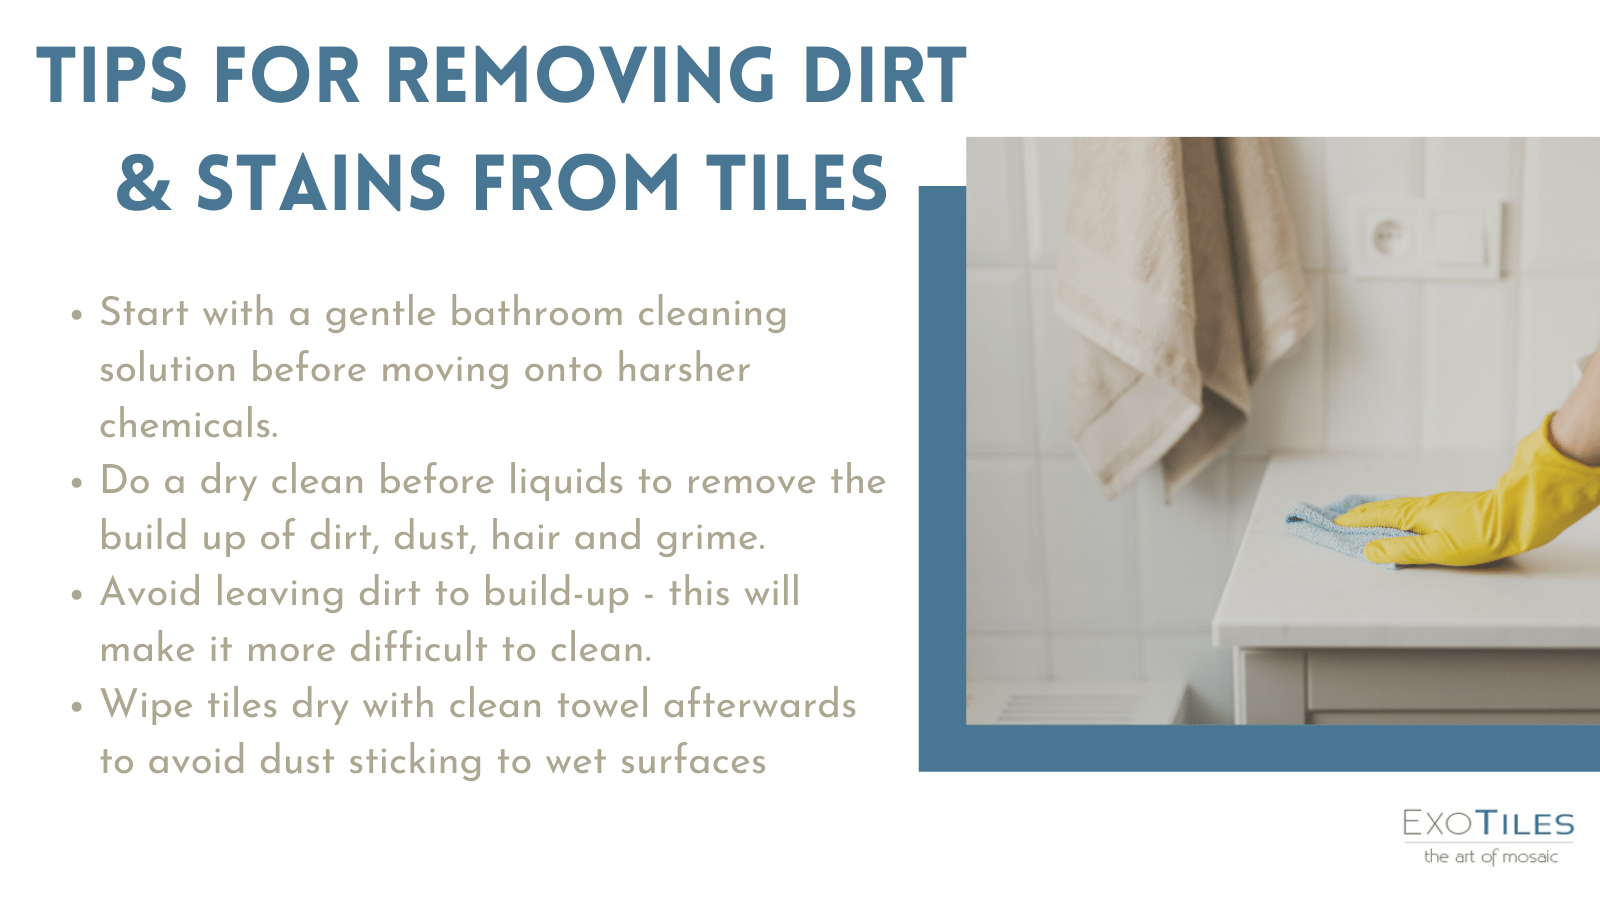 tips for cleaning dirt from bathroom tiles inforgraphic